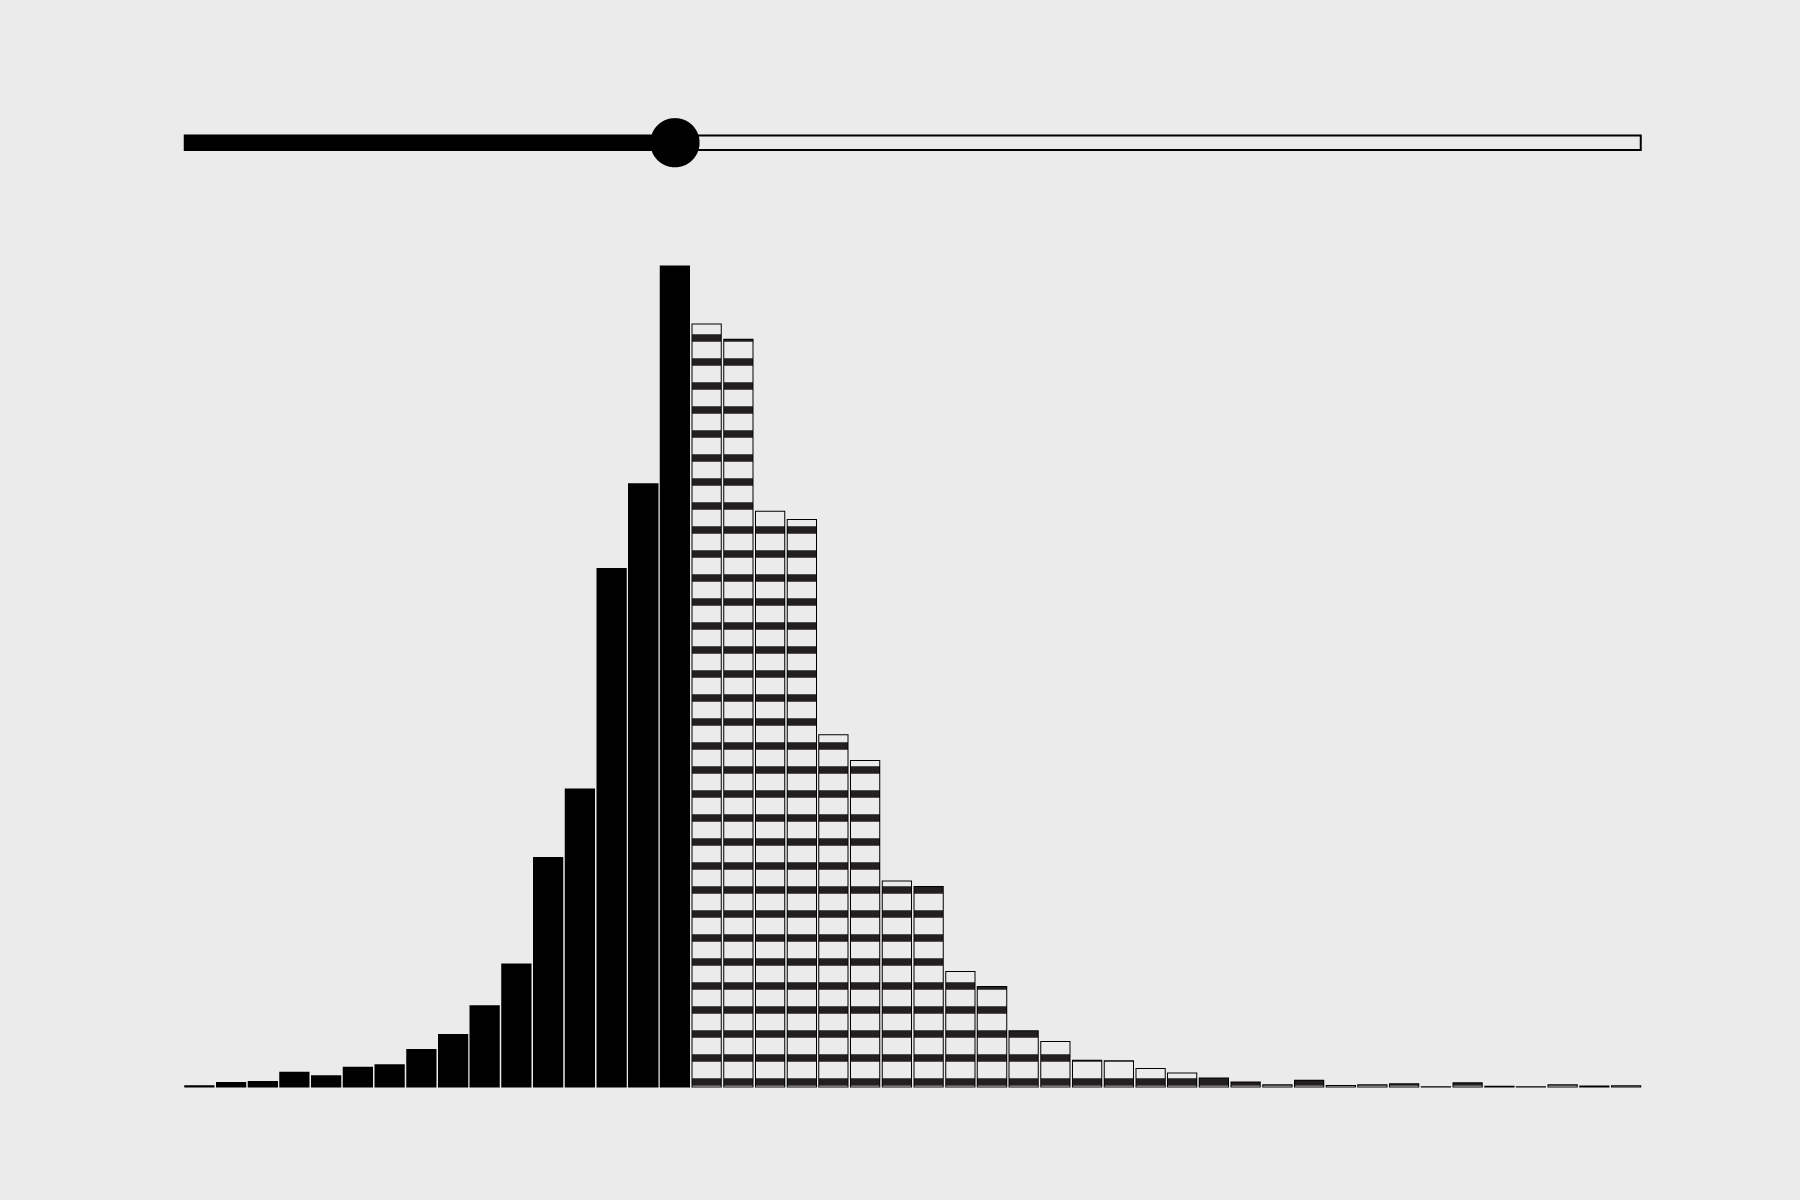 How to Make an Interactive Bar Chart With a Slider